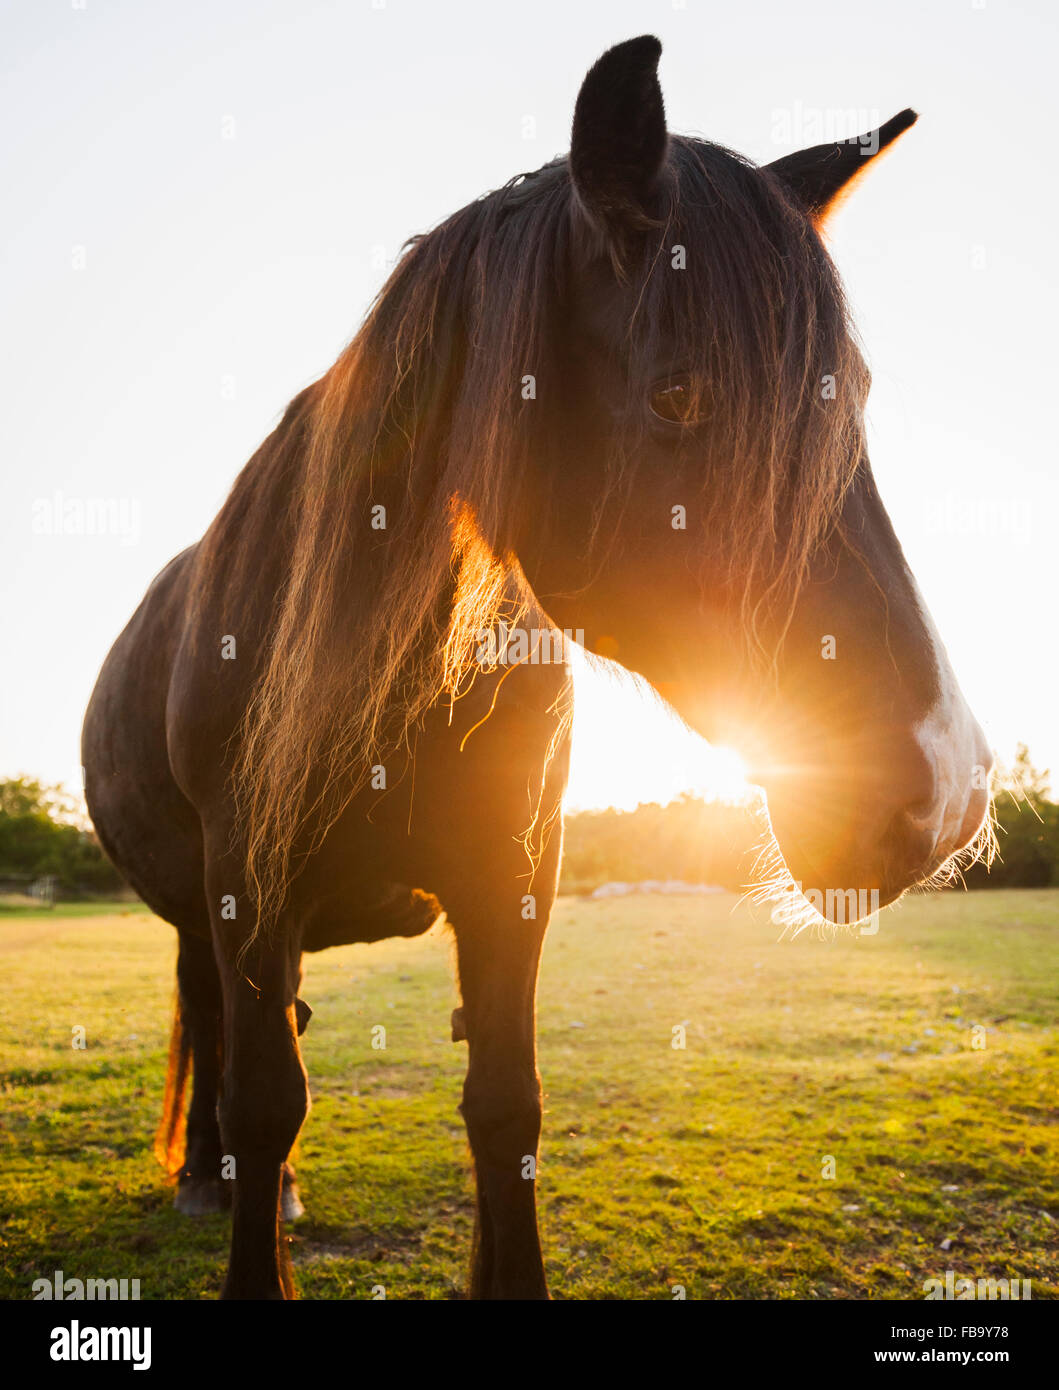 Sweden, Gotland, Horse at sunset - Stock Image